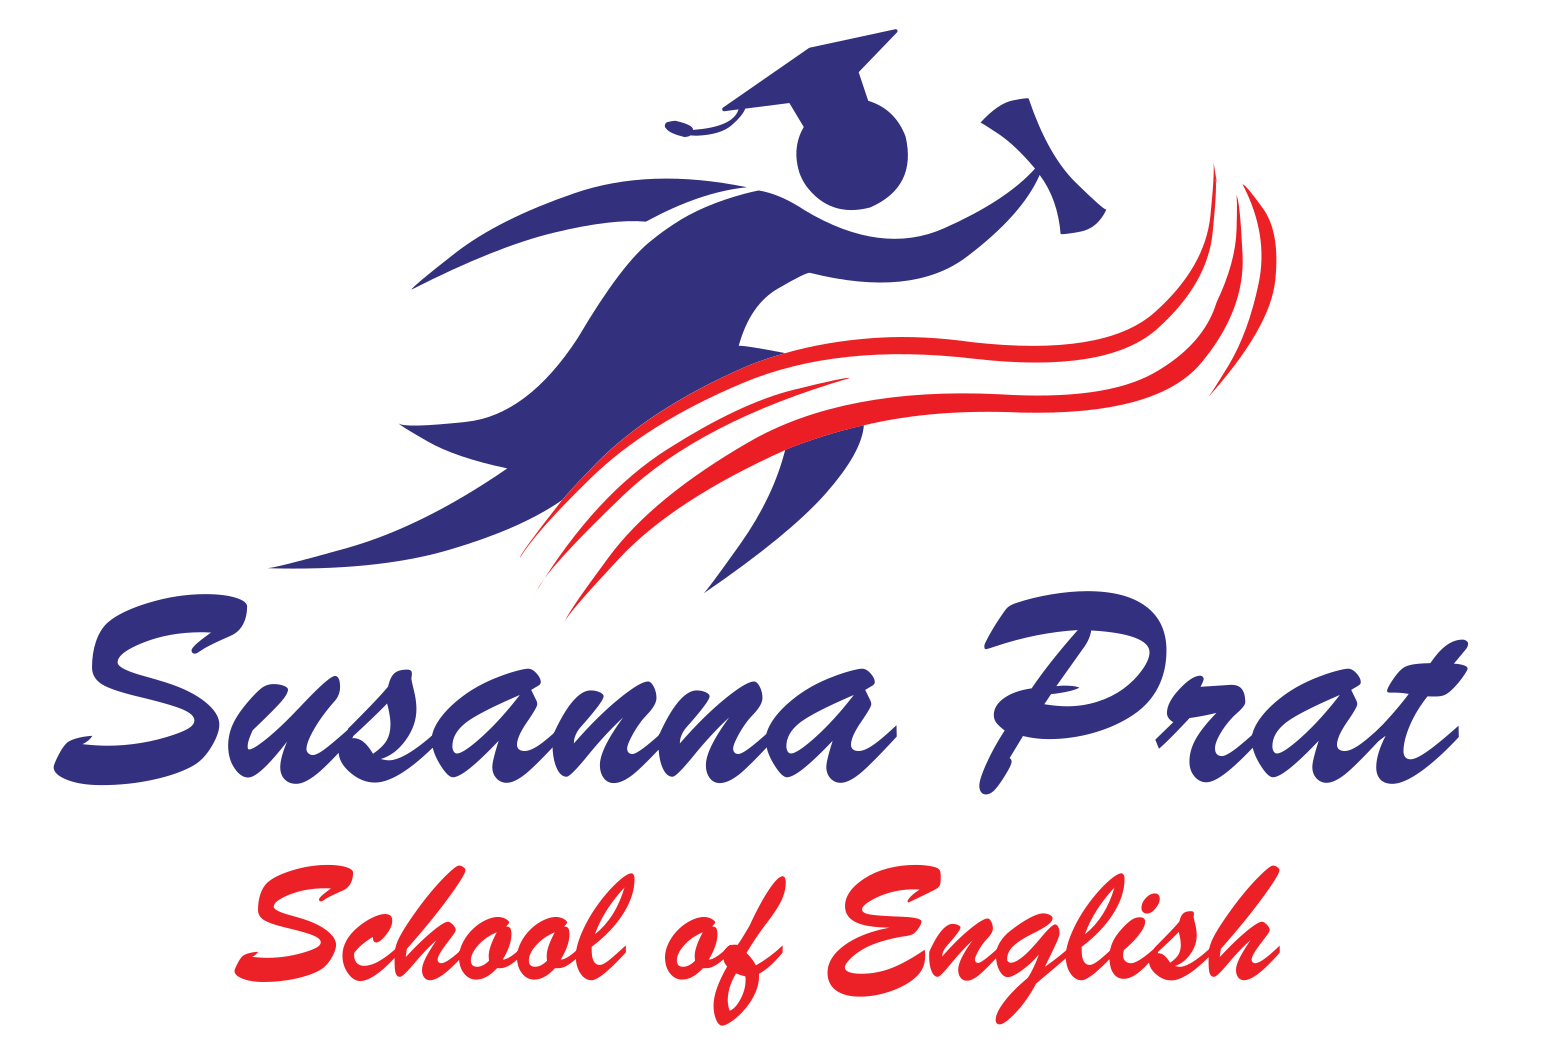 Susanna Prat - School of English